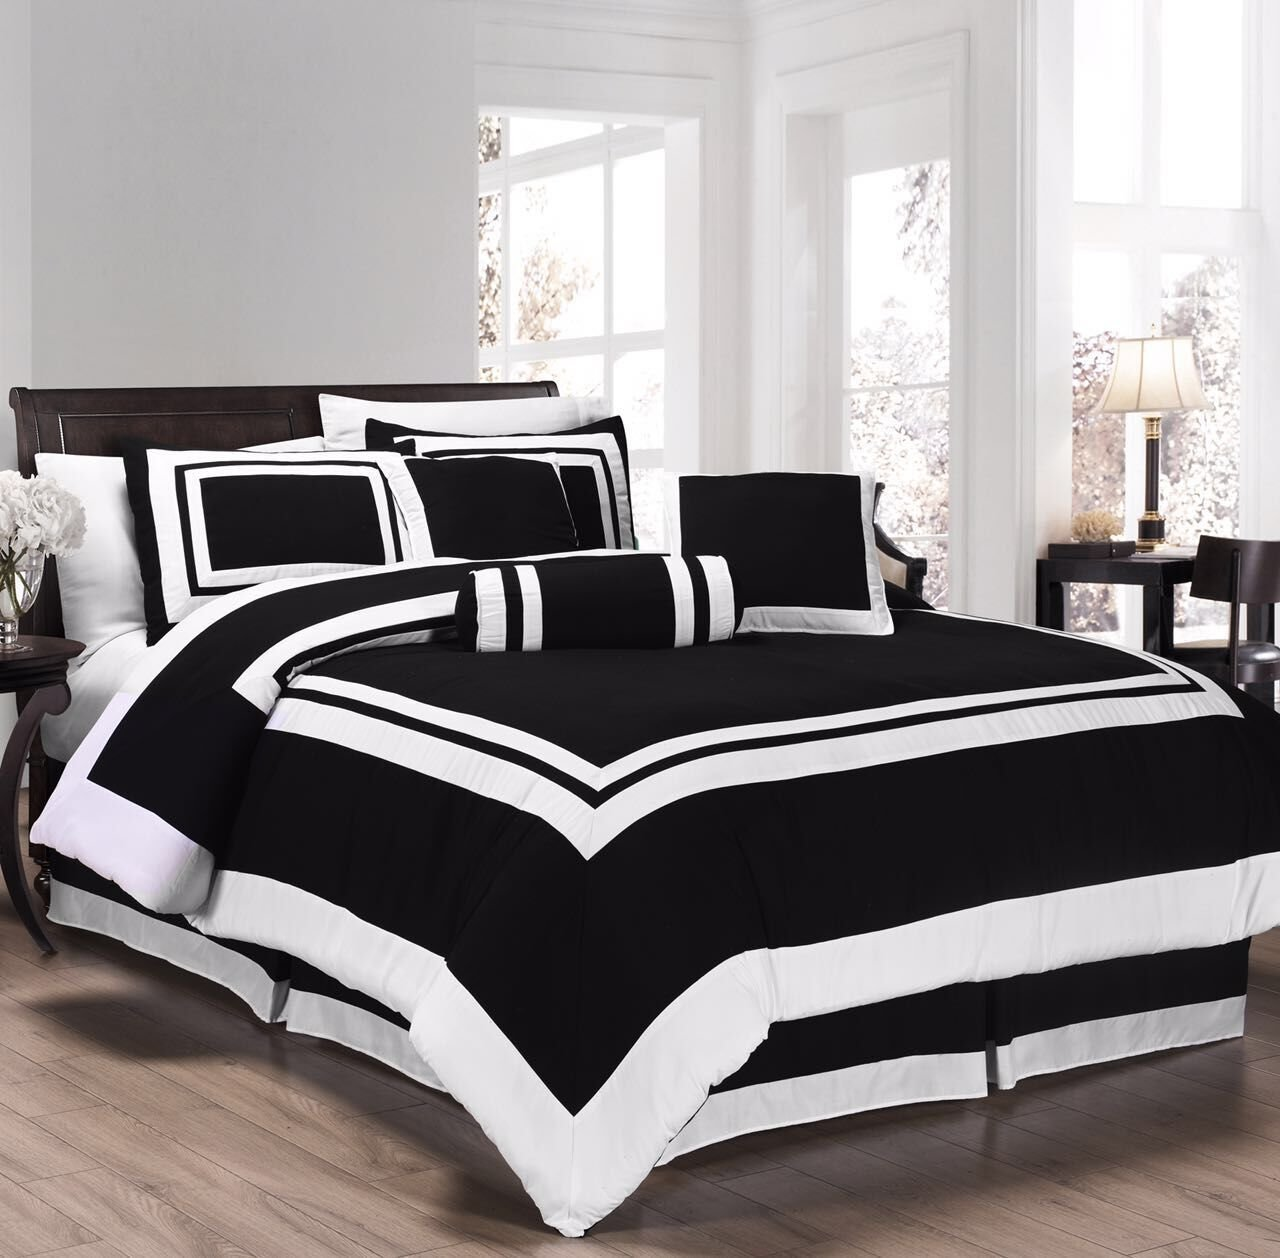 Chezmoi Collection 7 Pieces Caprice Black/White Square Pattern Hotel Bedding Comforter Set Queen, Black/White